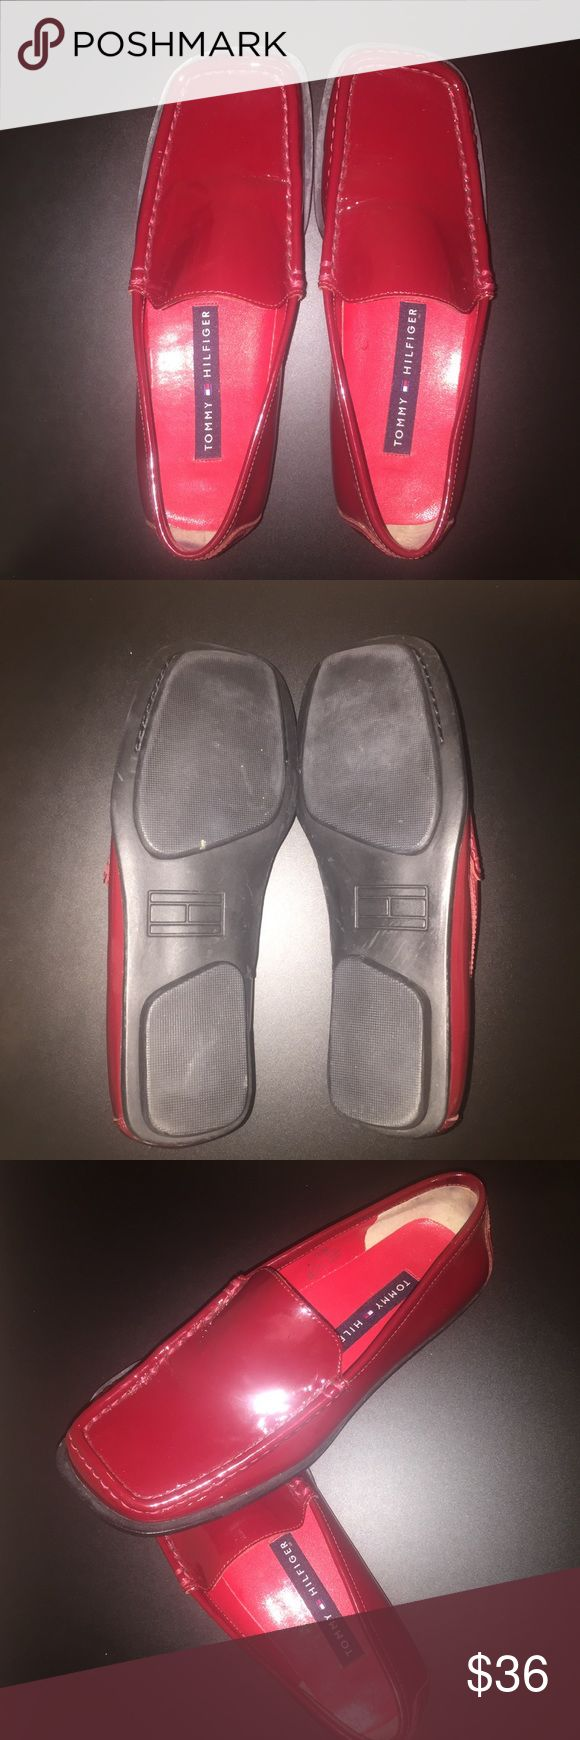 Women's orginal Tommy Hilfiger Only worn once, excellent condition, cute and shiny, great to dress up a lot of different outfits, no scratches or stains, original Tommy Hilfiger, comes from a smoke/ pet free home, fast shipping Tommy Hilfiger Shoes Platforms